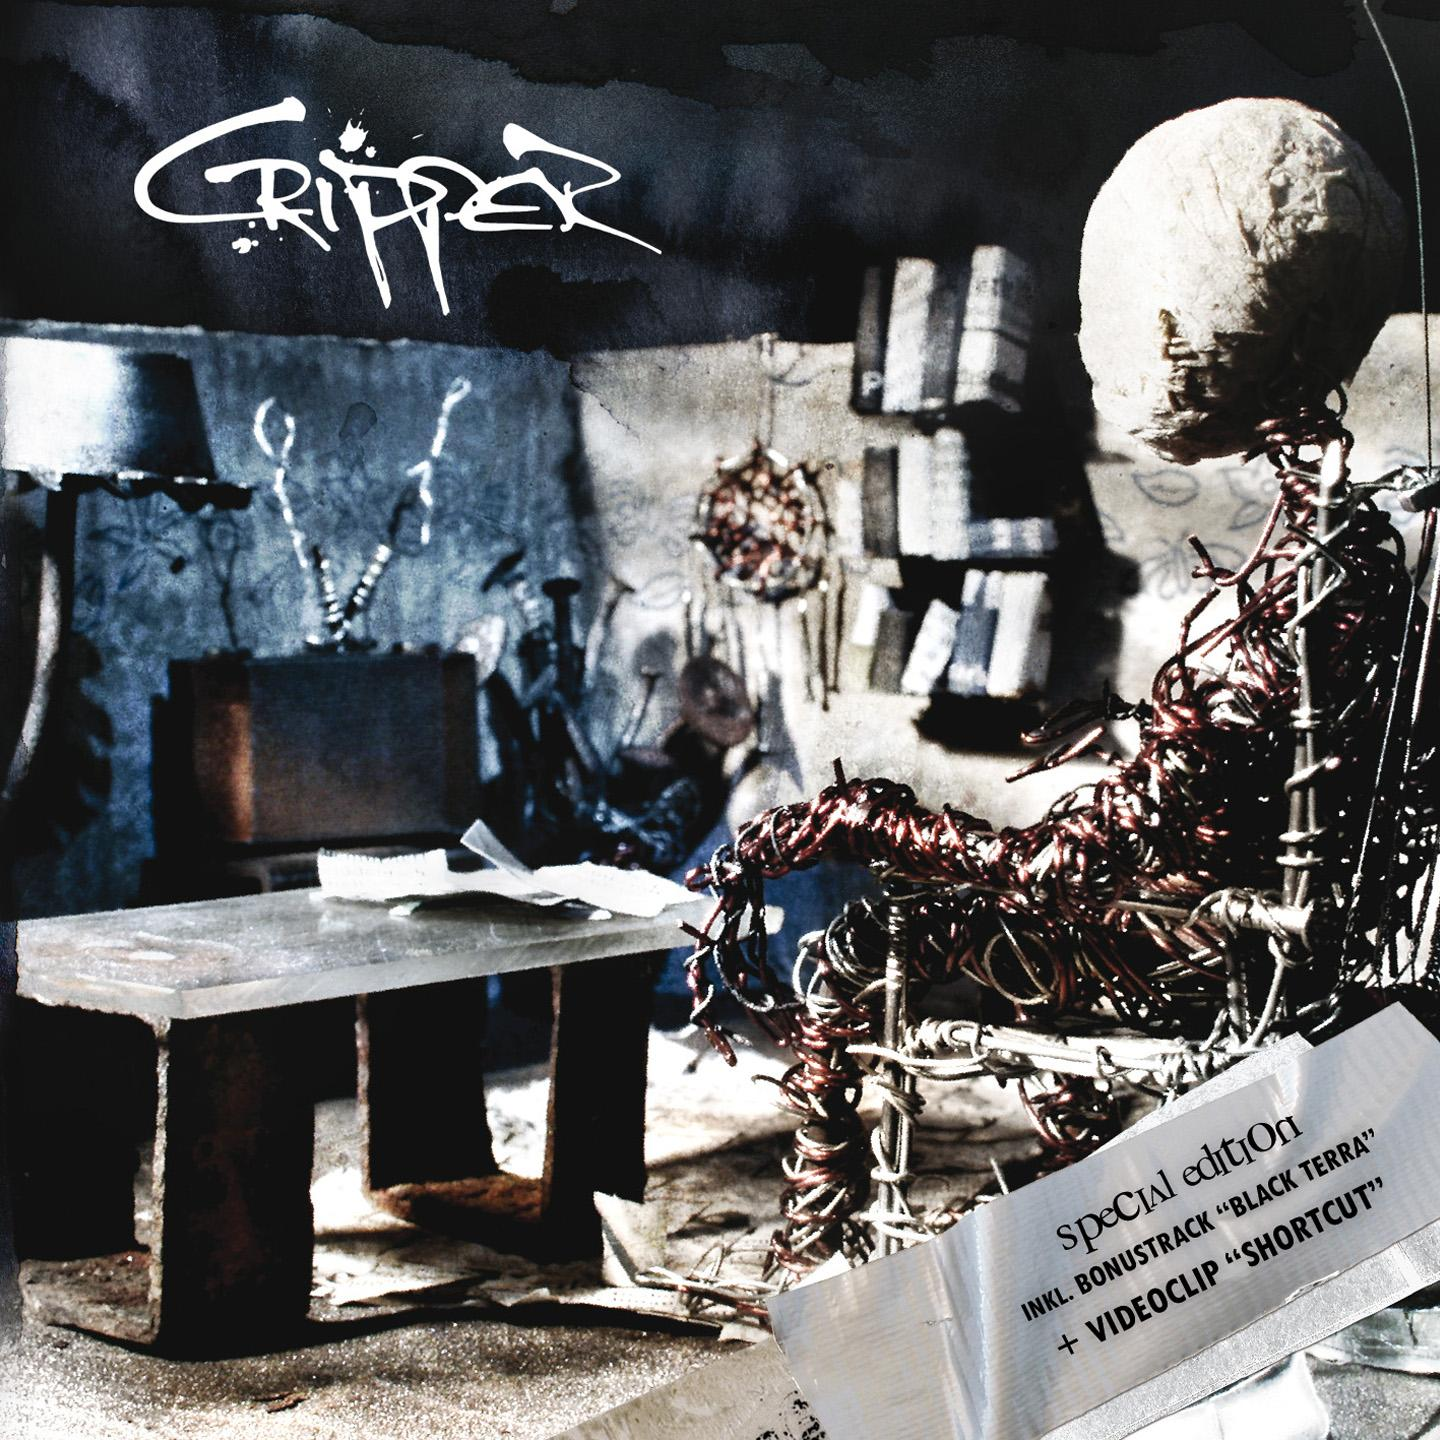 Cripper cover art